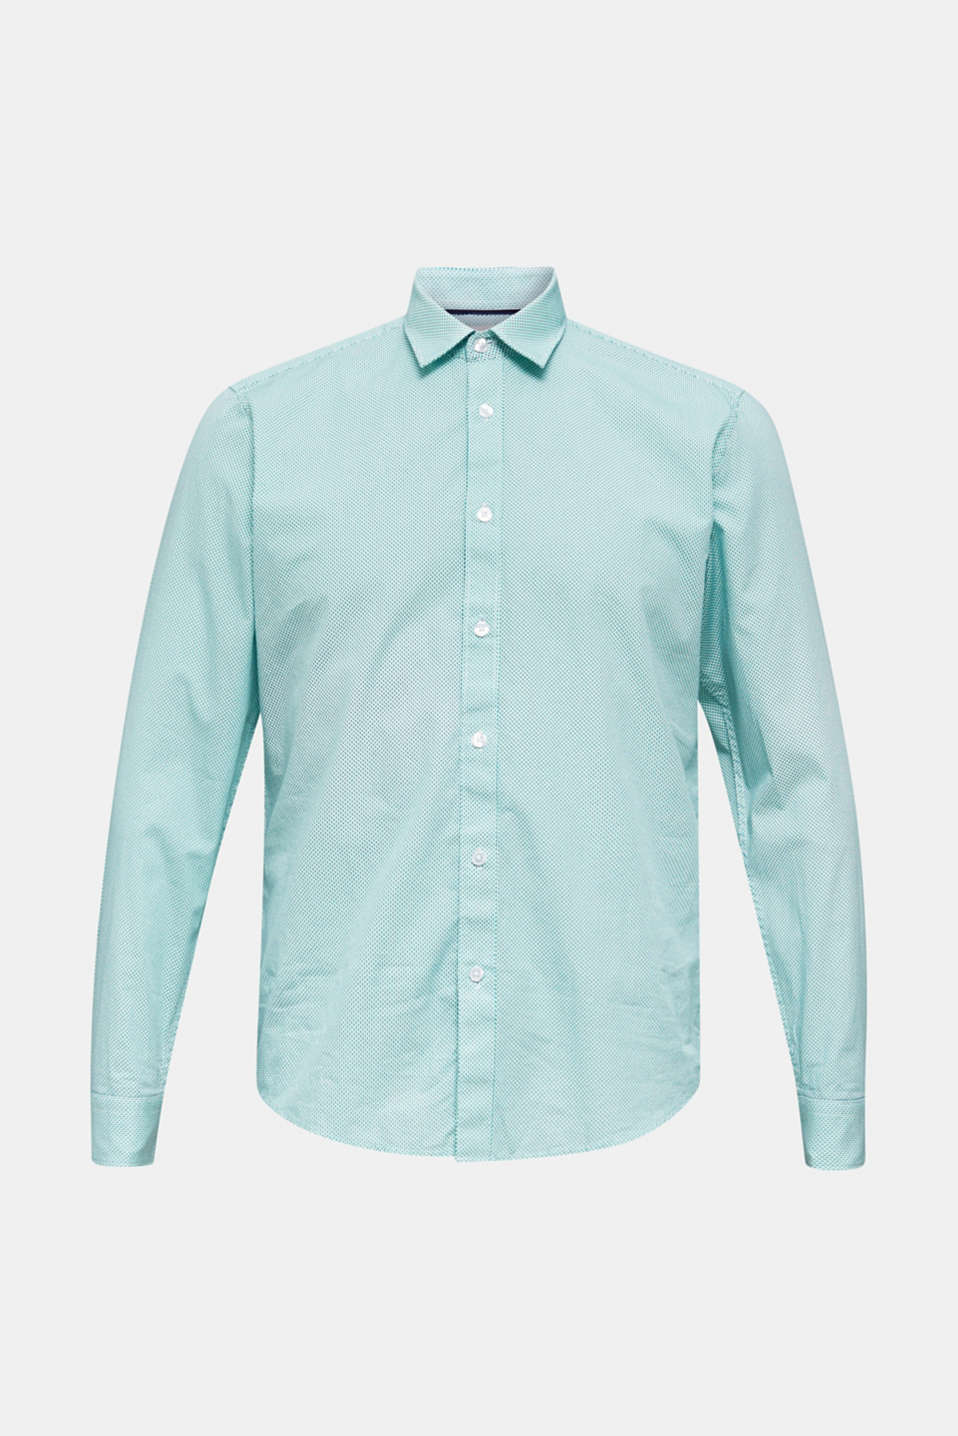 Textured shirt made of 100% cotton, TURQUOISE 4, detail image number 0